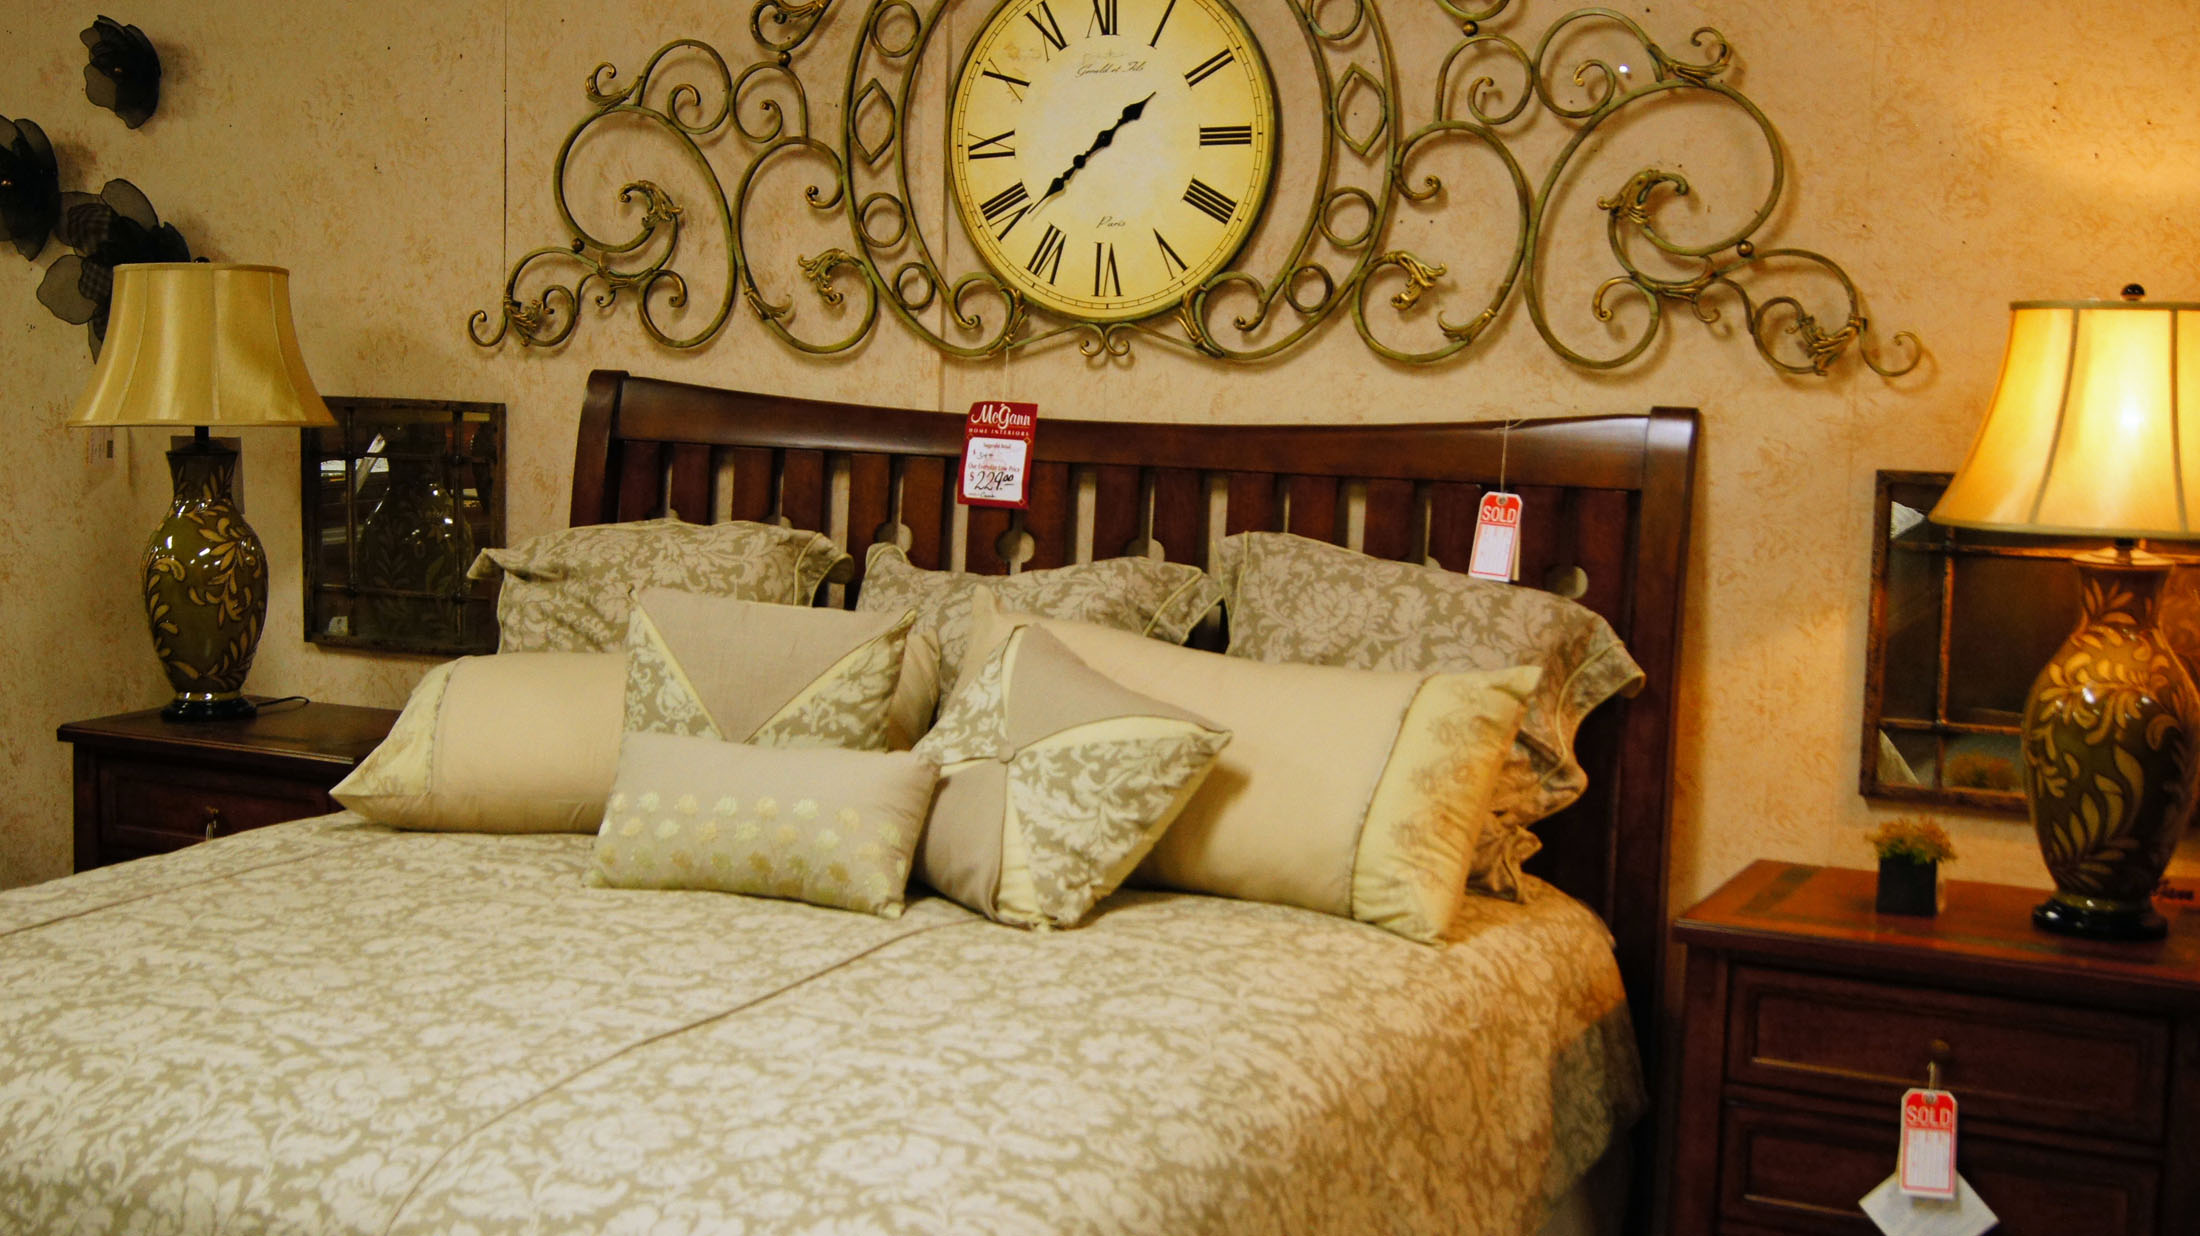 Furniture Stores Milwaukee Wi Home Design Ideas and